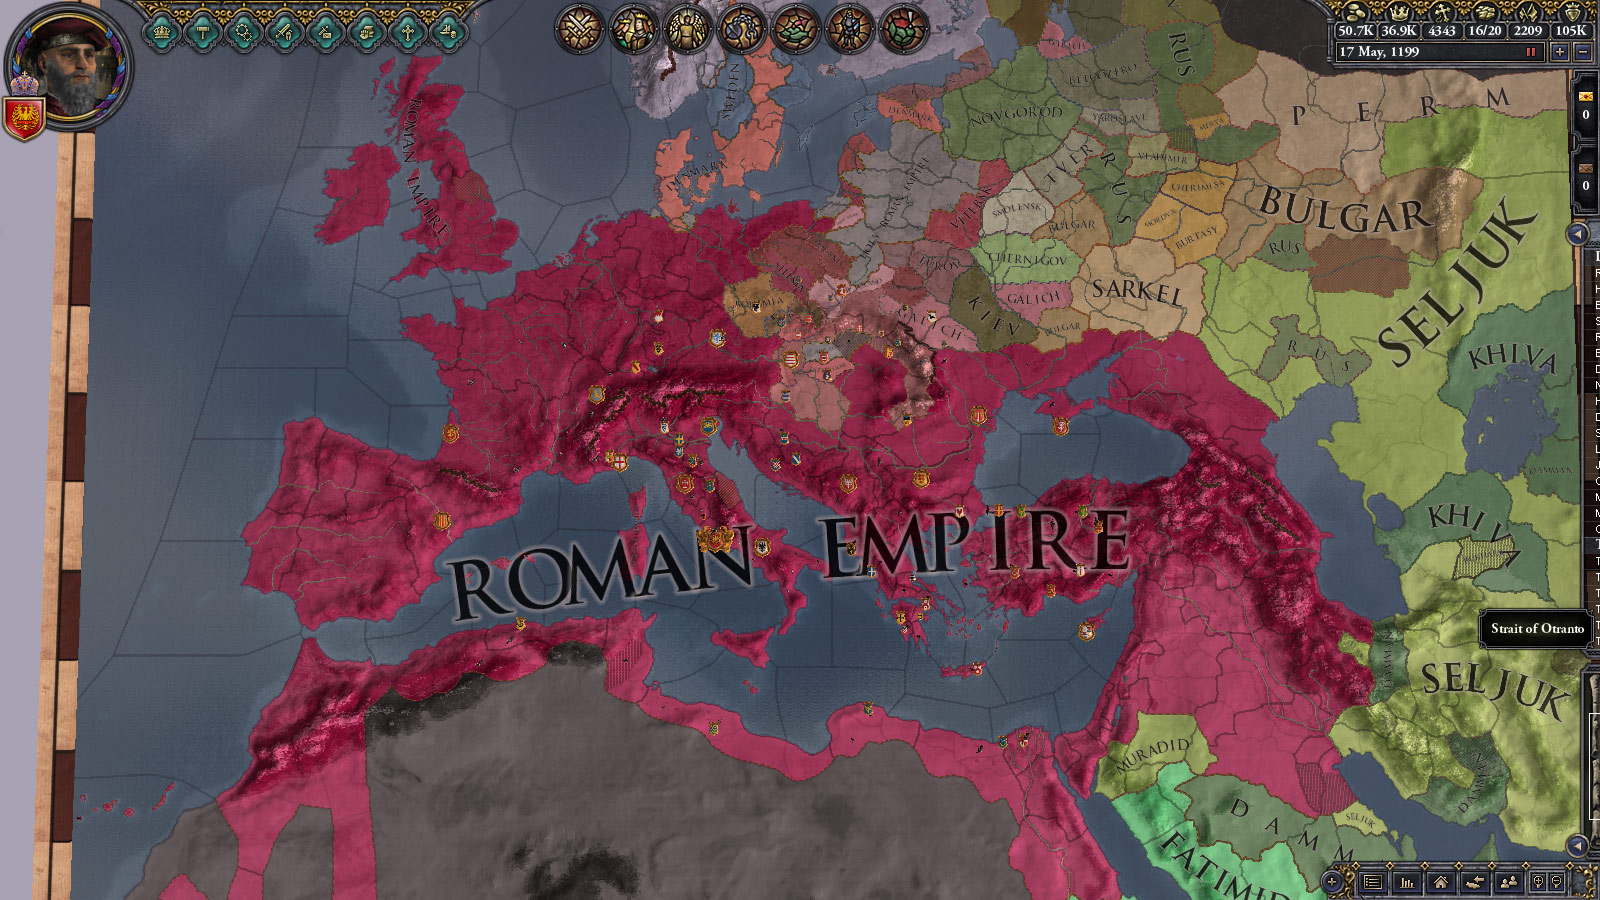 Roman Empire (Guide) | Crusader Kings II Wiki | FANDOM powered by Wikia